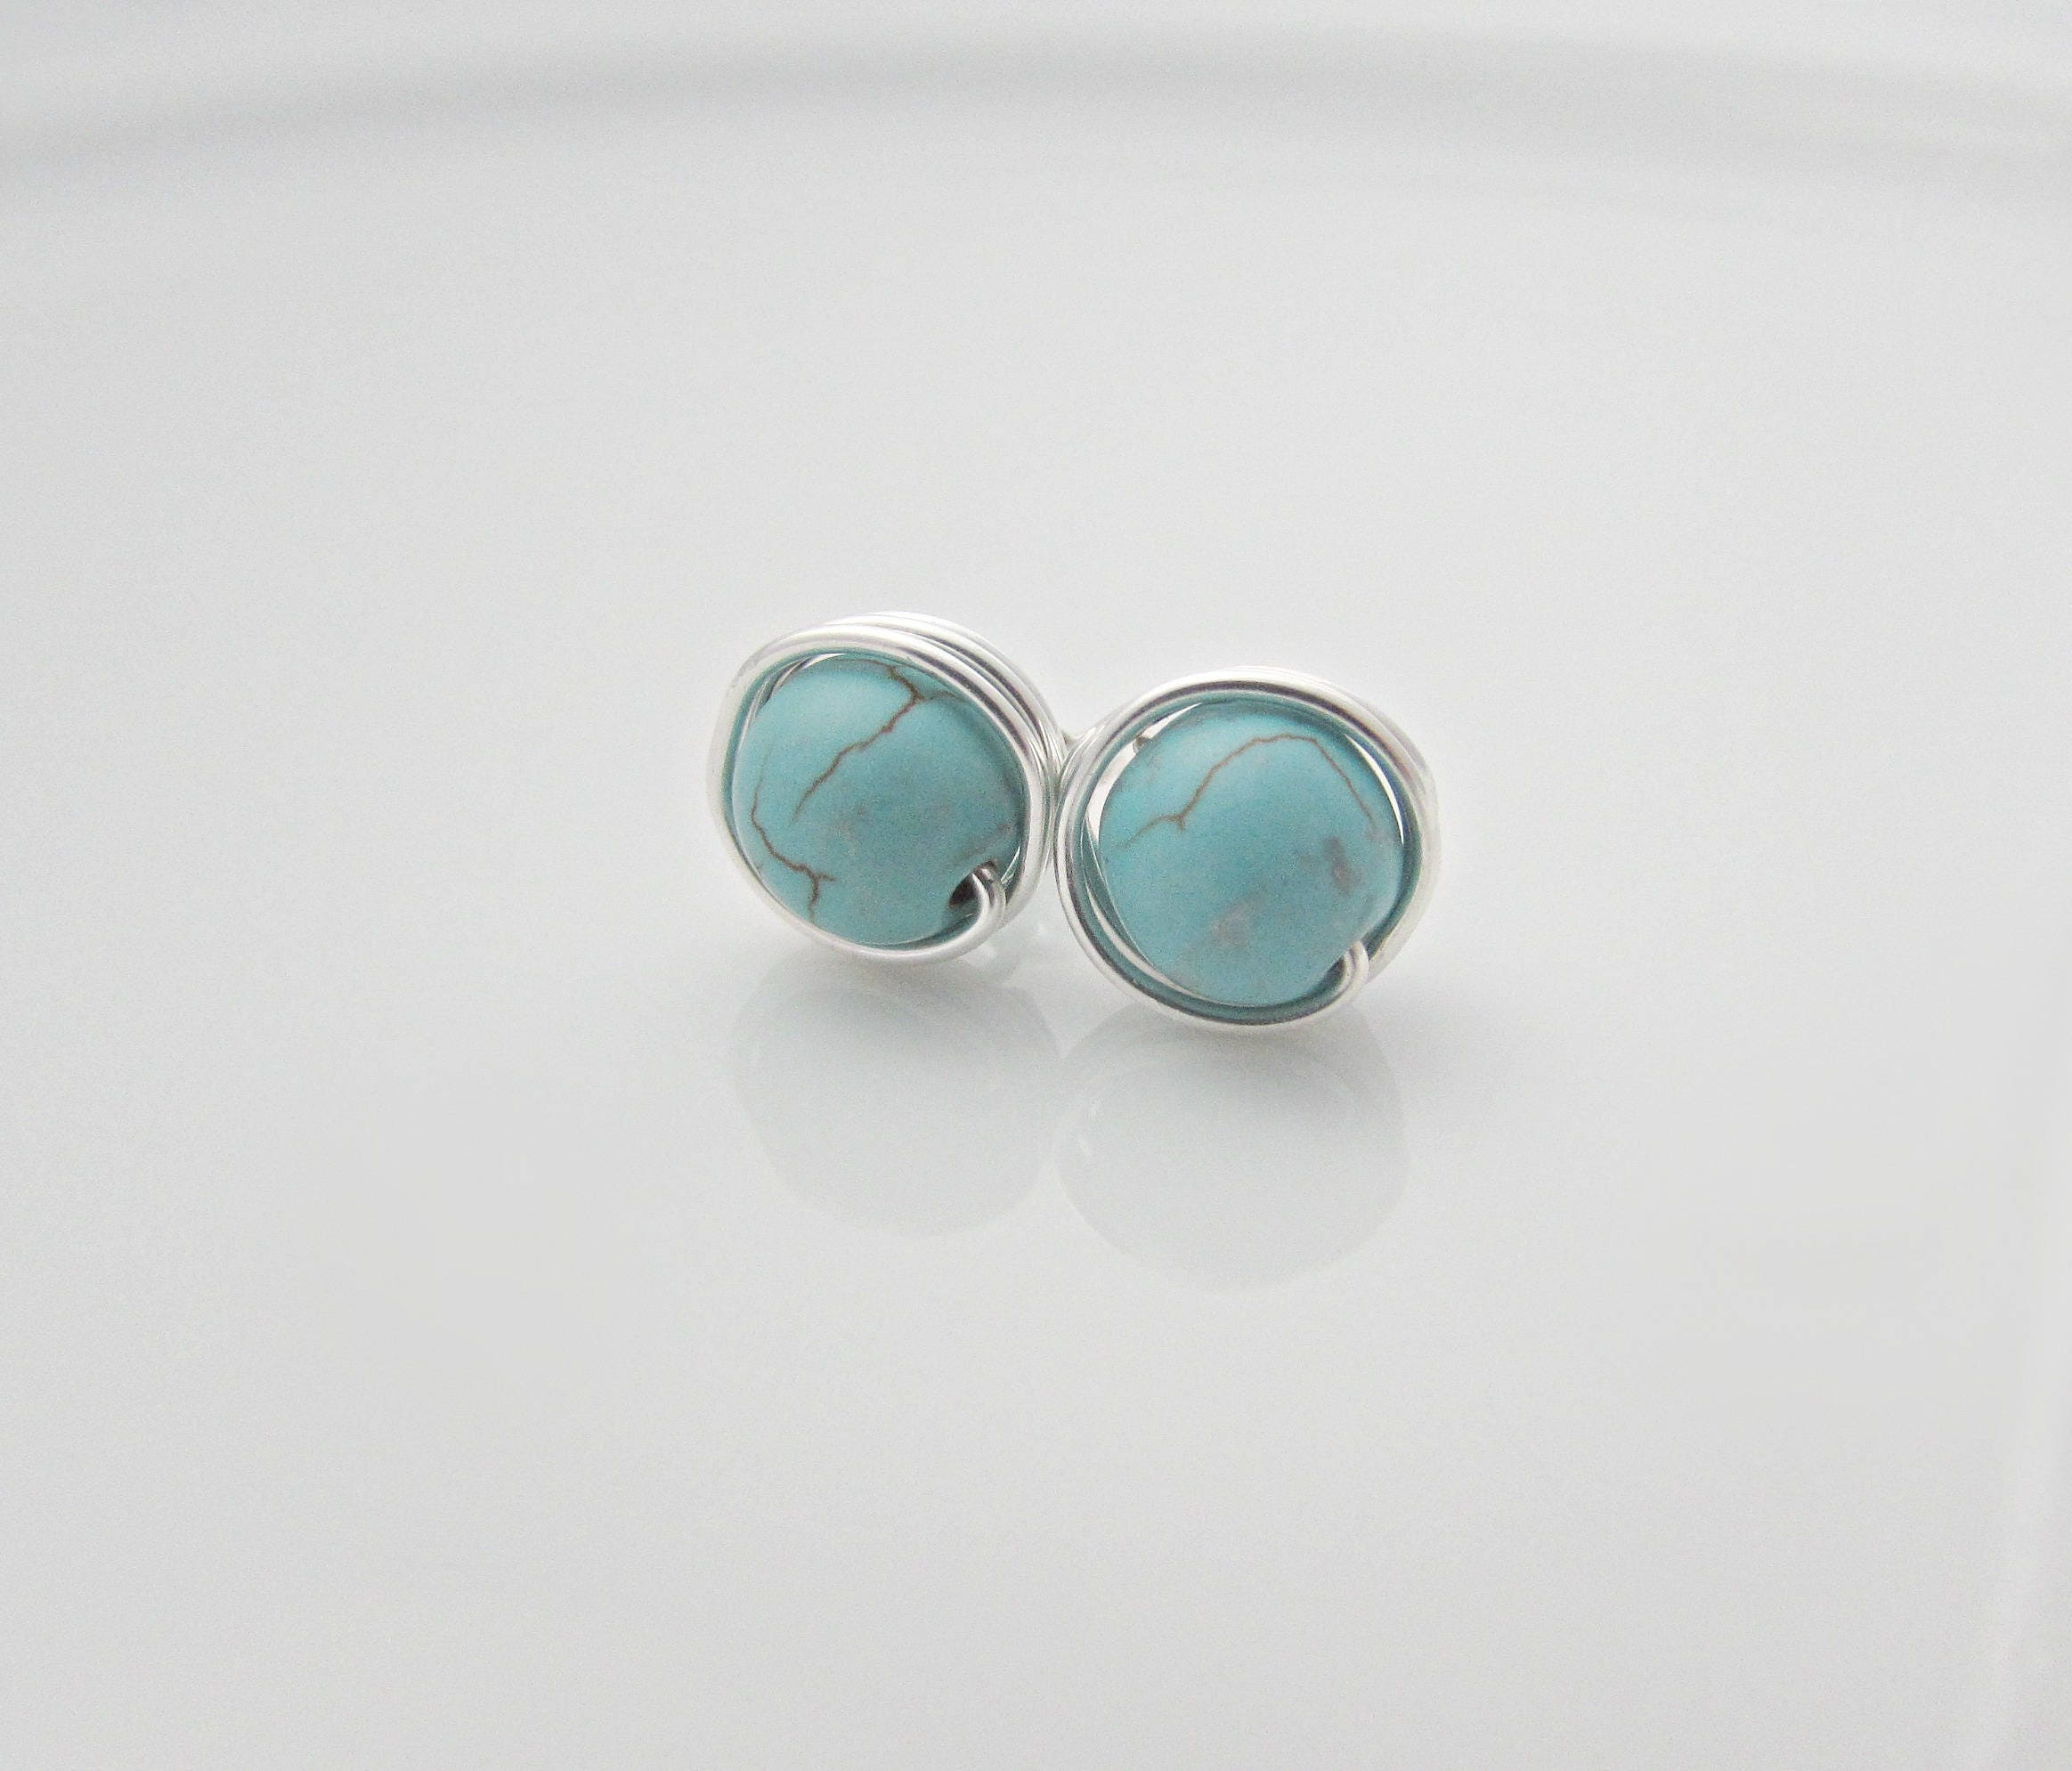 accessories turquoise pin sterling silver i want earrings stud round